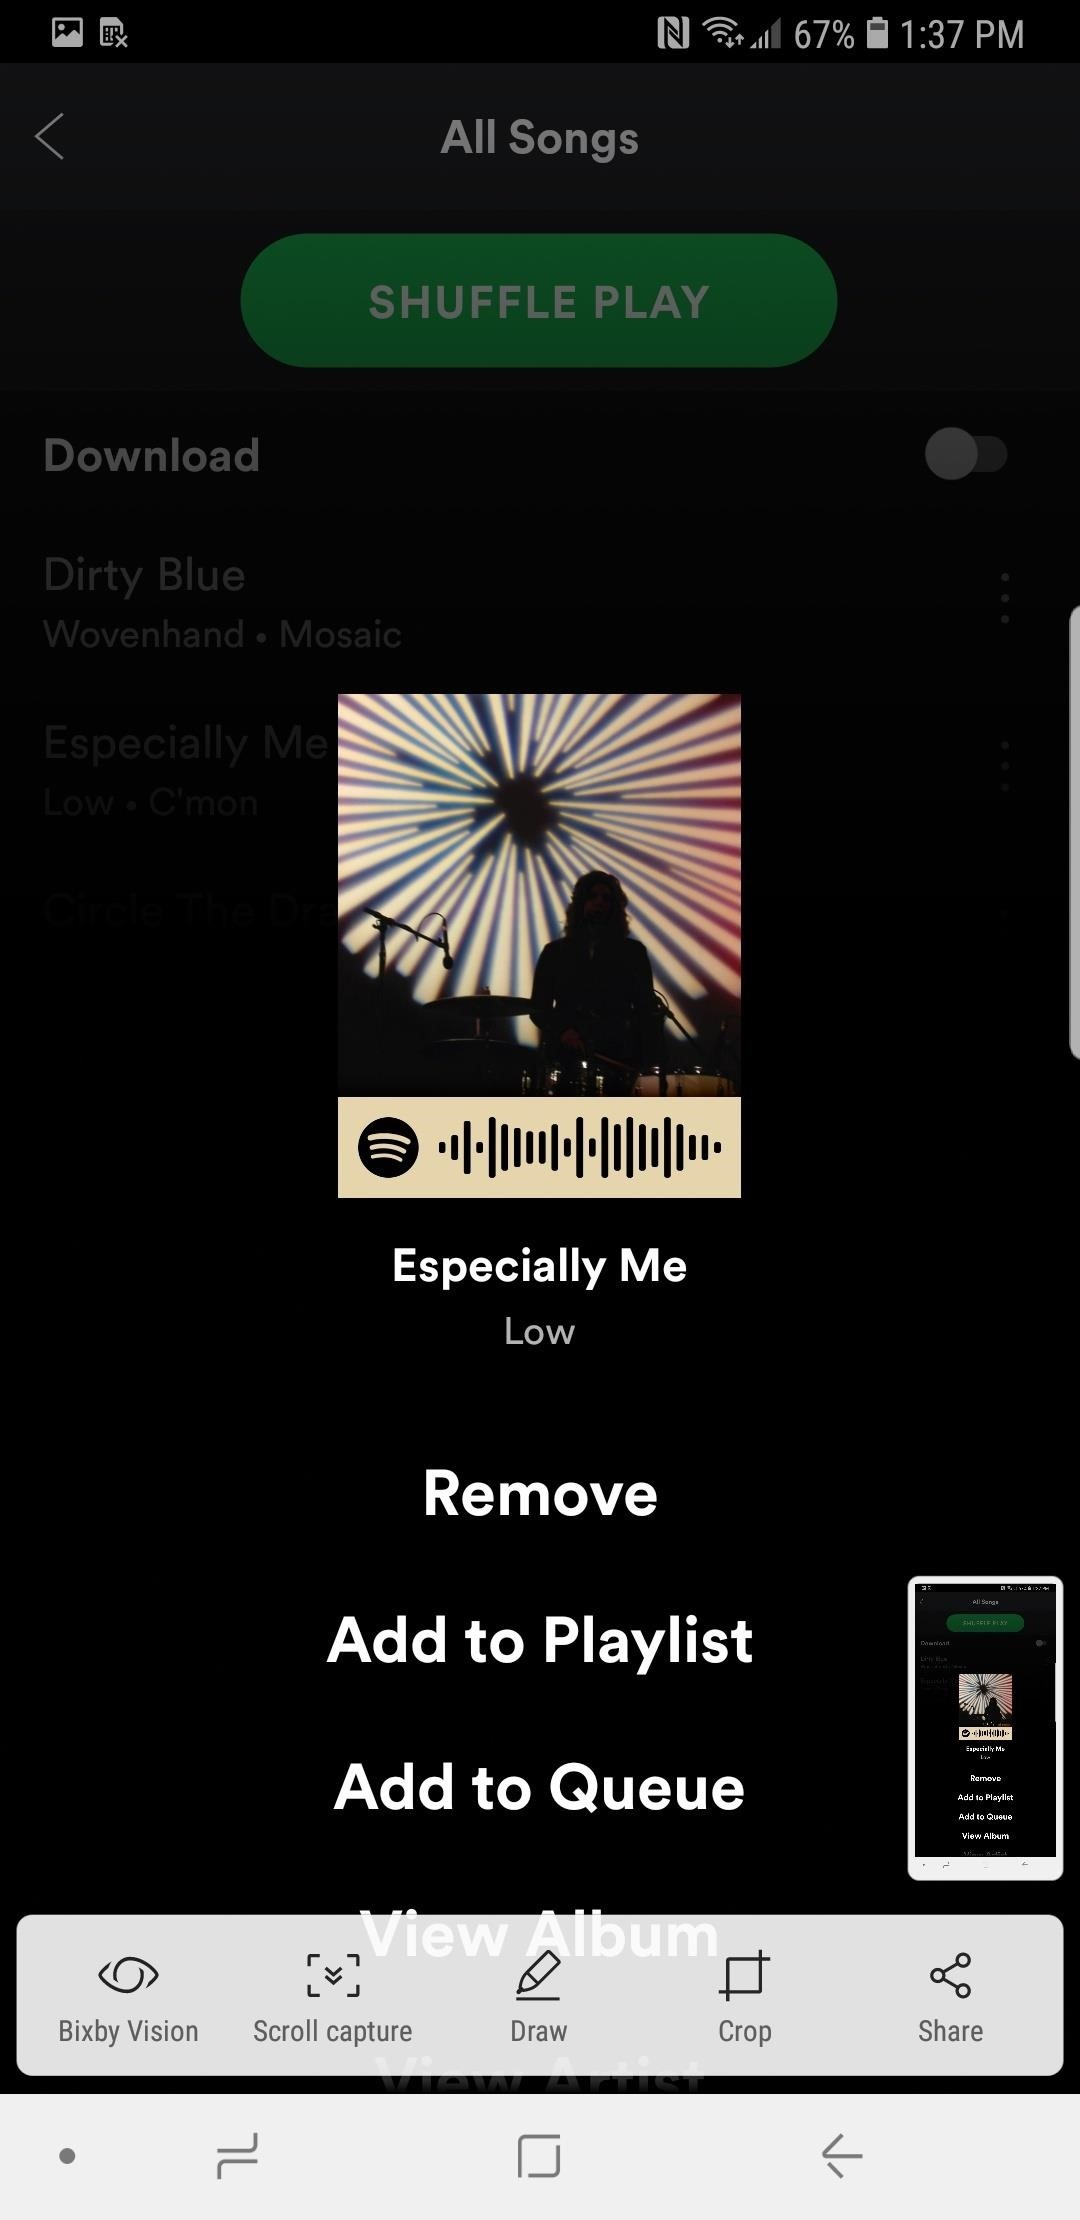 Spotify 101: How to Easily Share Music to Friends from Android & iPhone